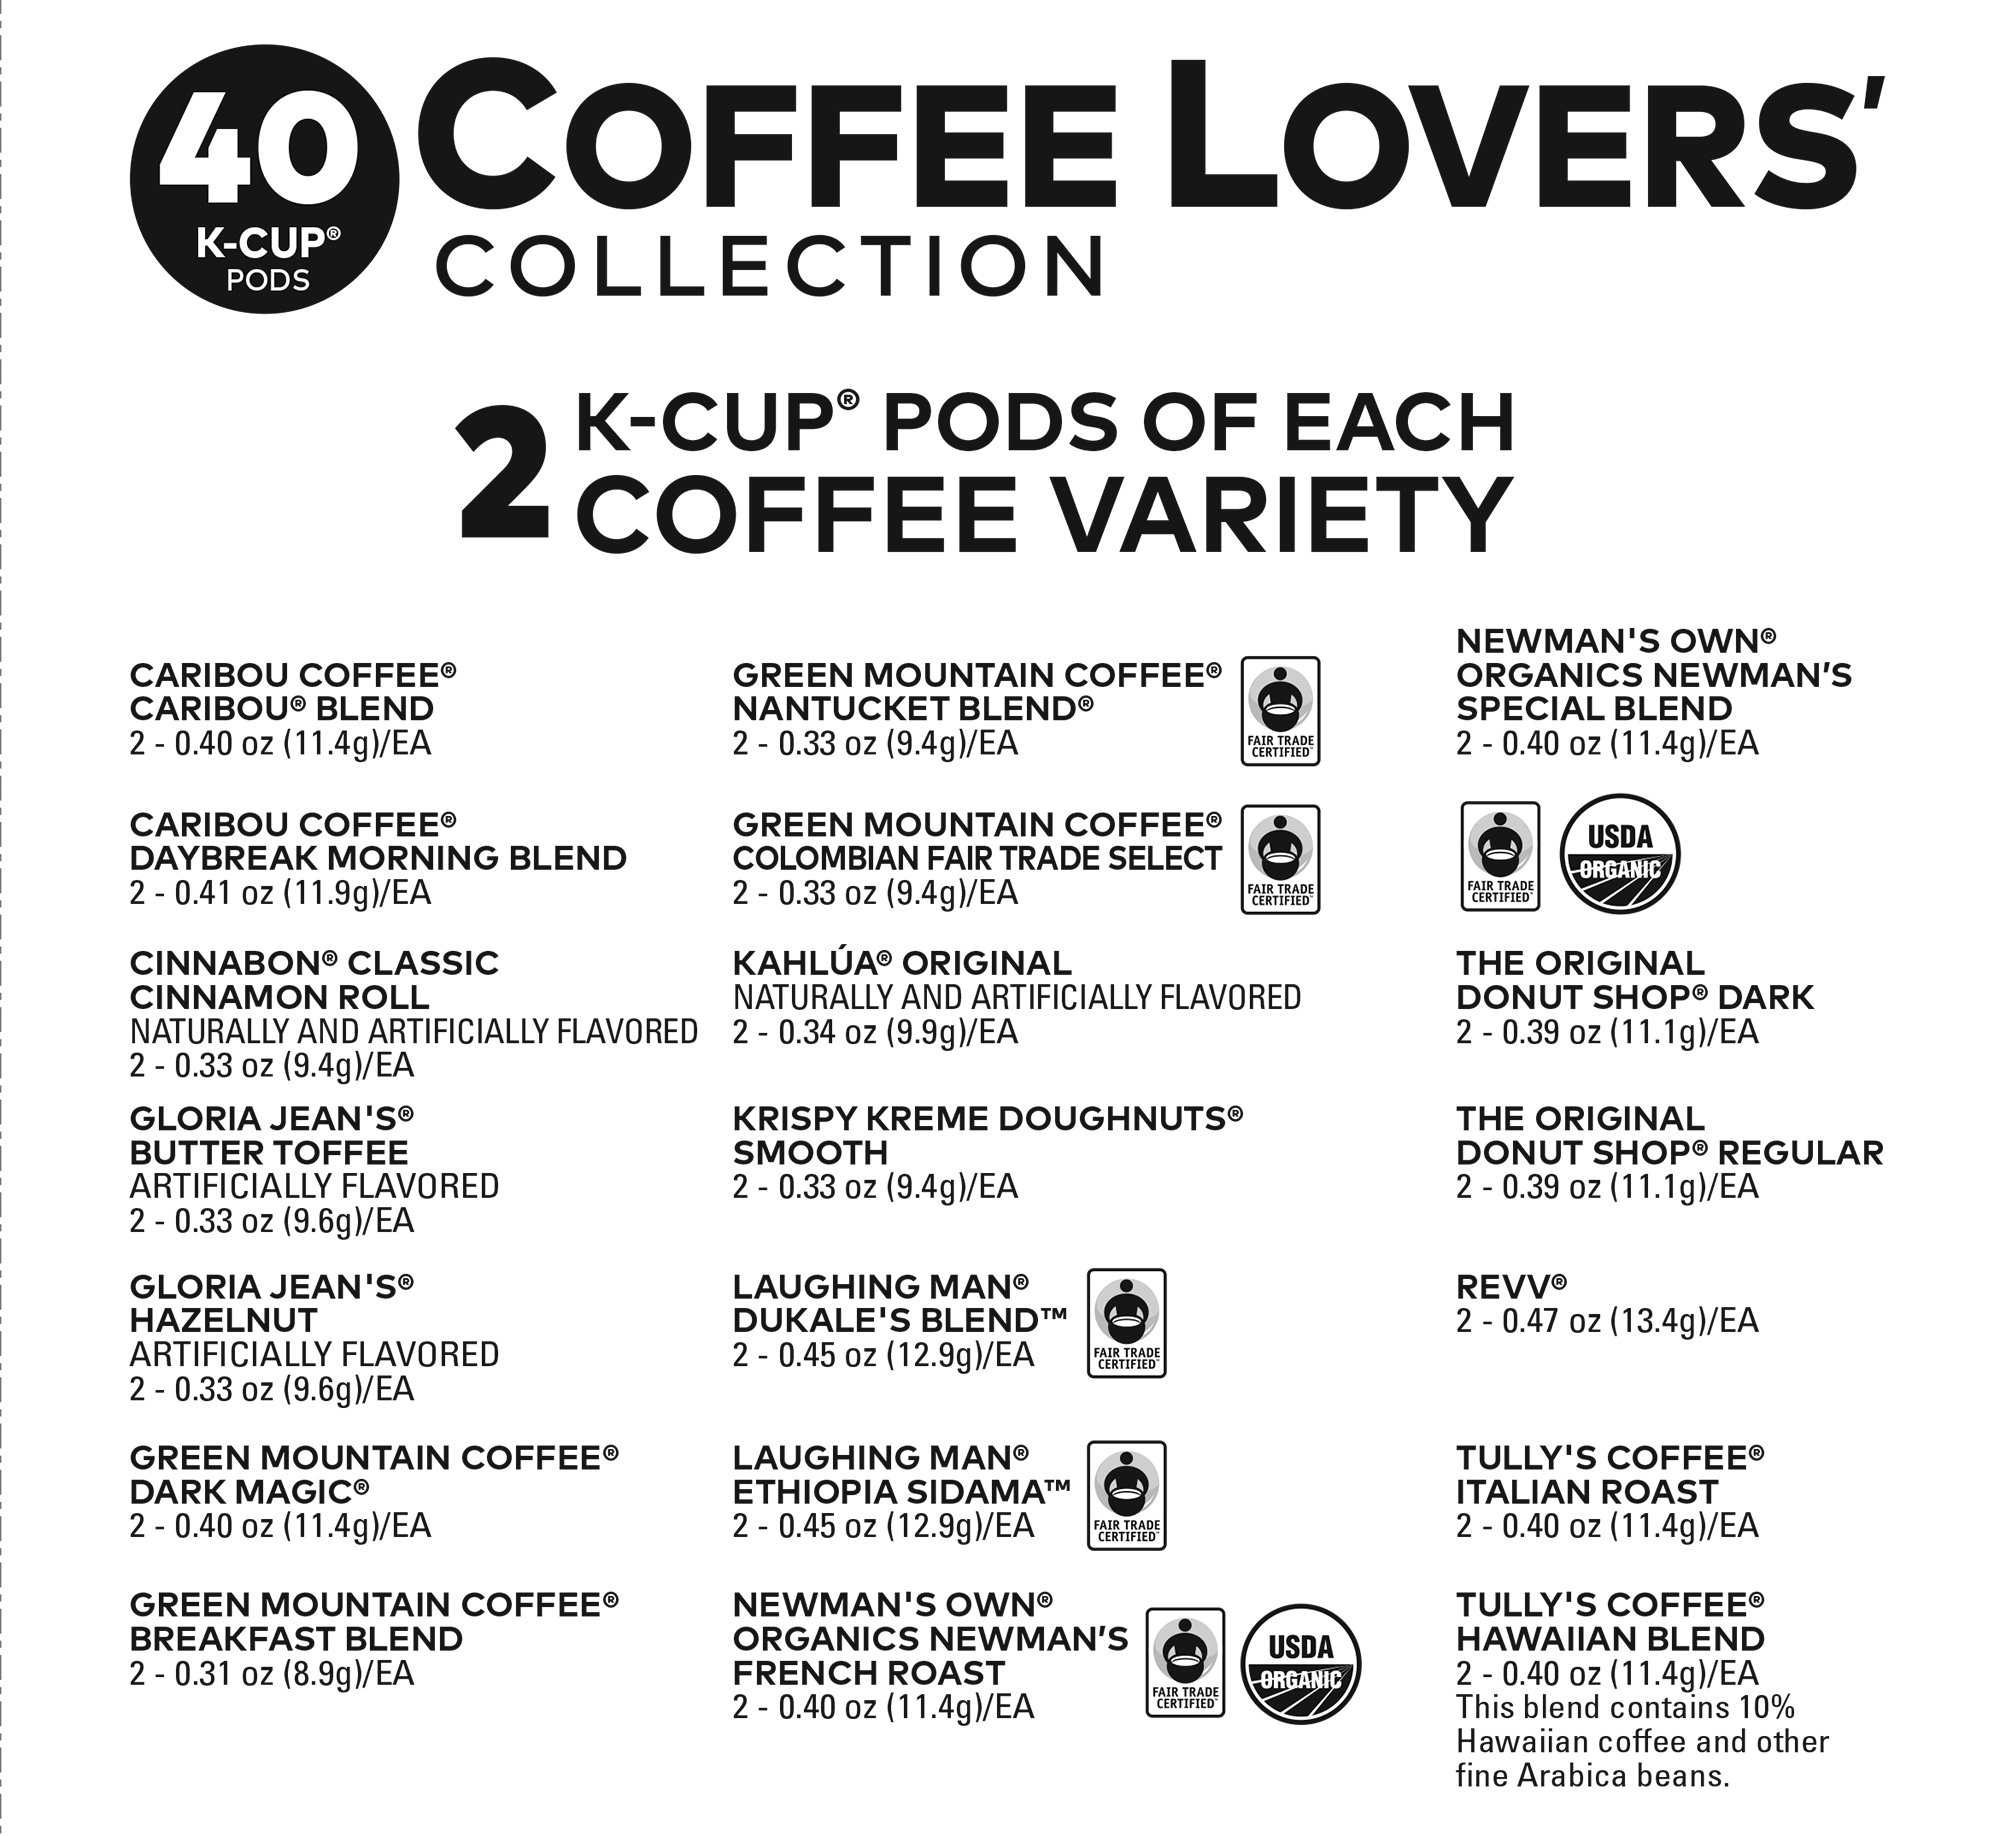 Keurig Coffee Lovers' Collection Sampler Pack, Single Serve K-Cup Pods, Compatible with all Keurig 1.0/Classic, 2.0 and K-Café Coffee Makers, Variety Pack, 40 Count by Variety Packs (Image #3)